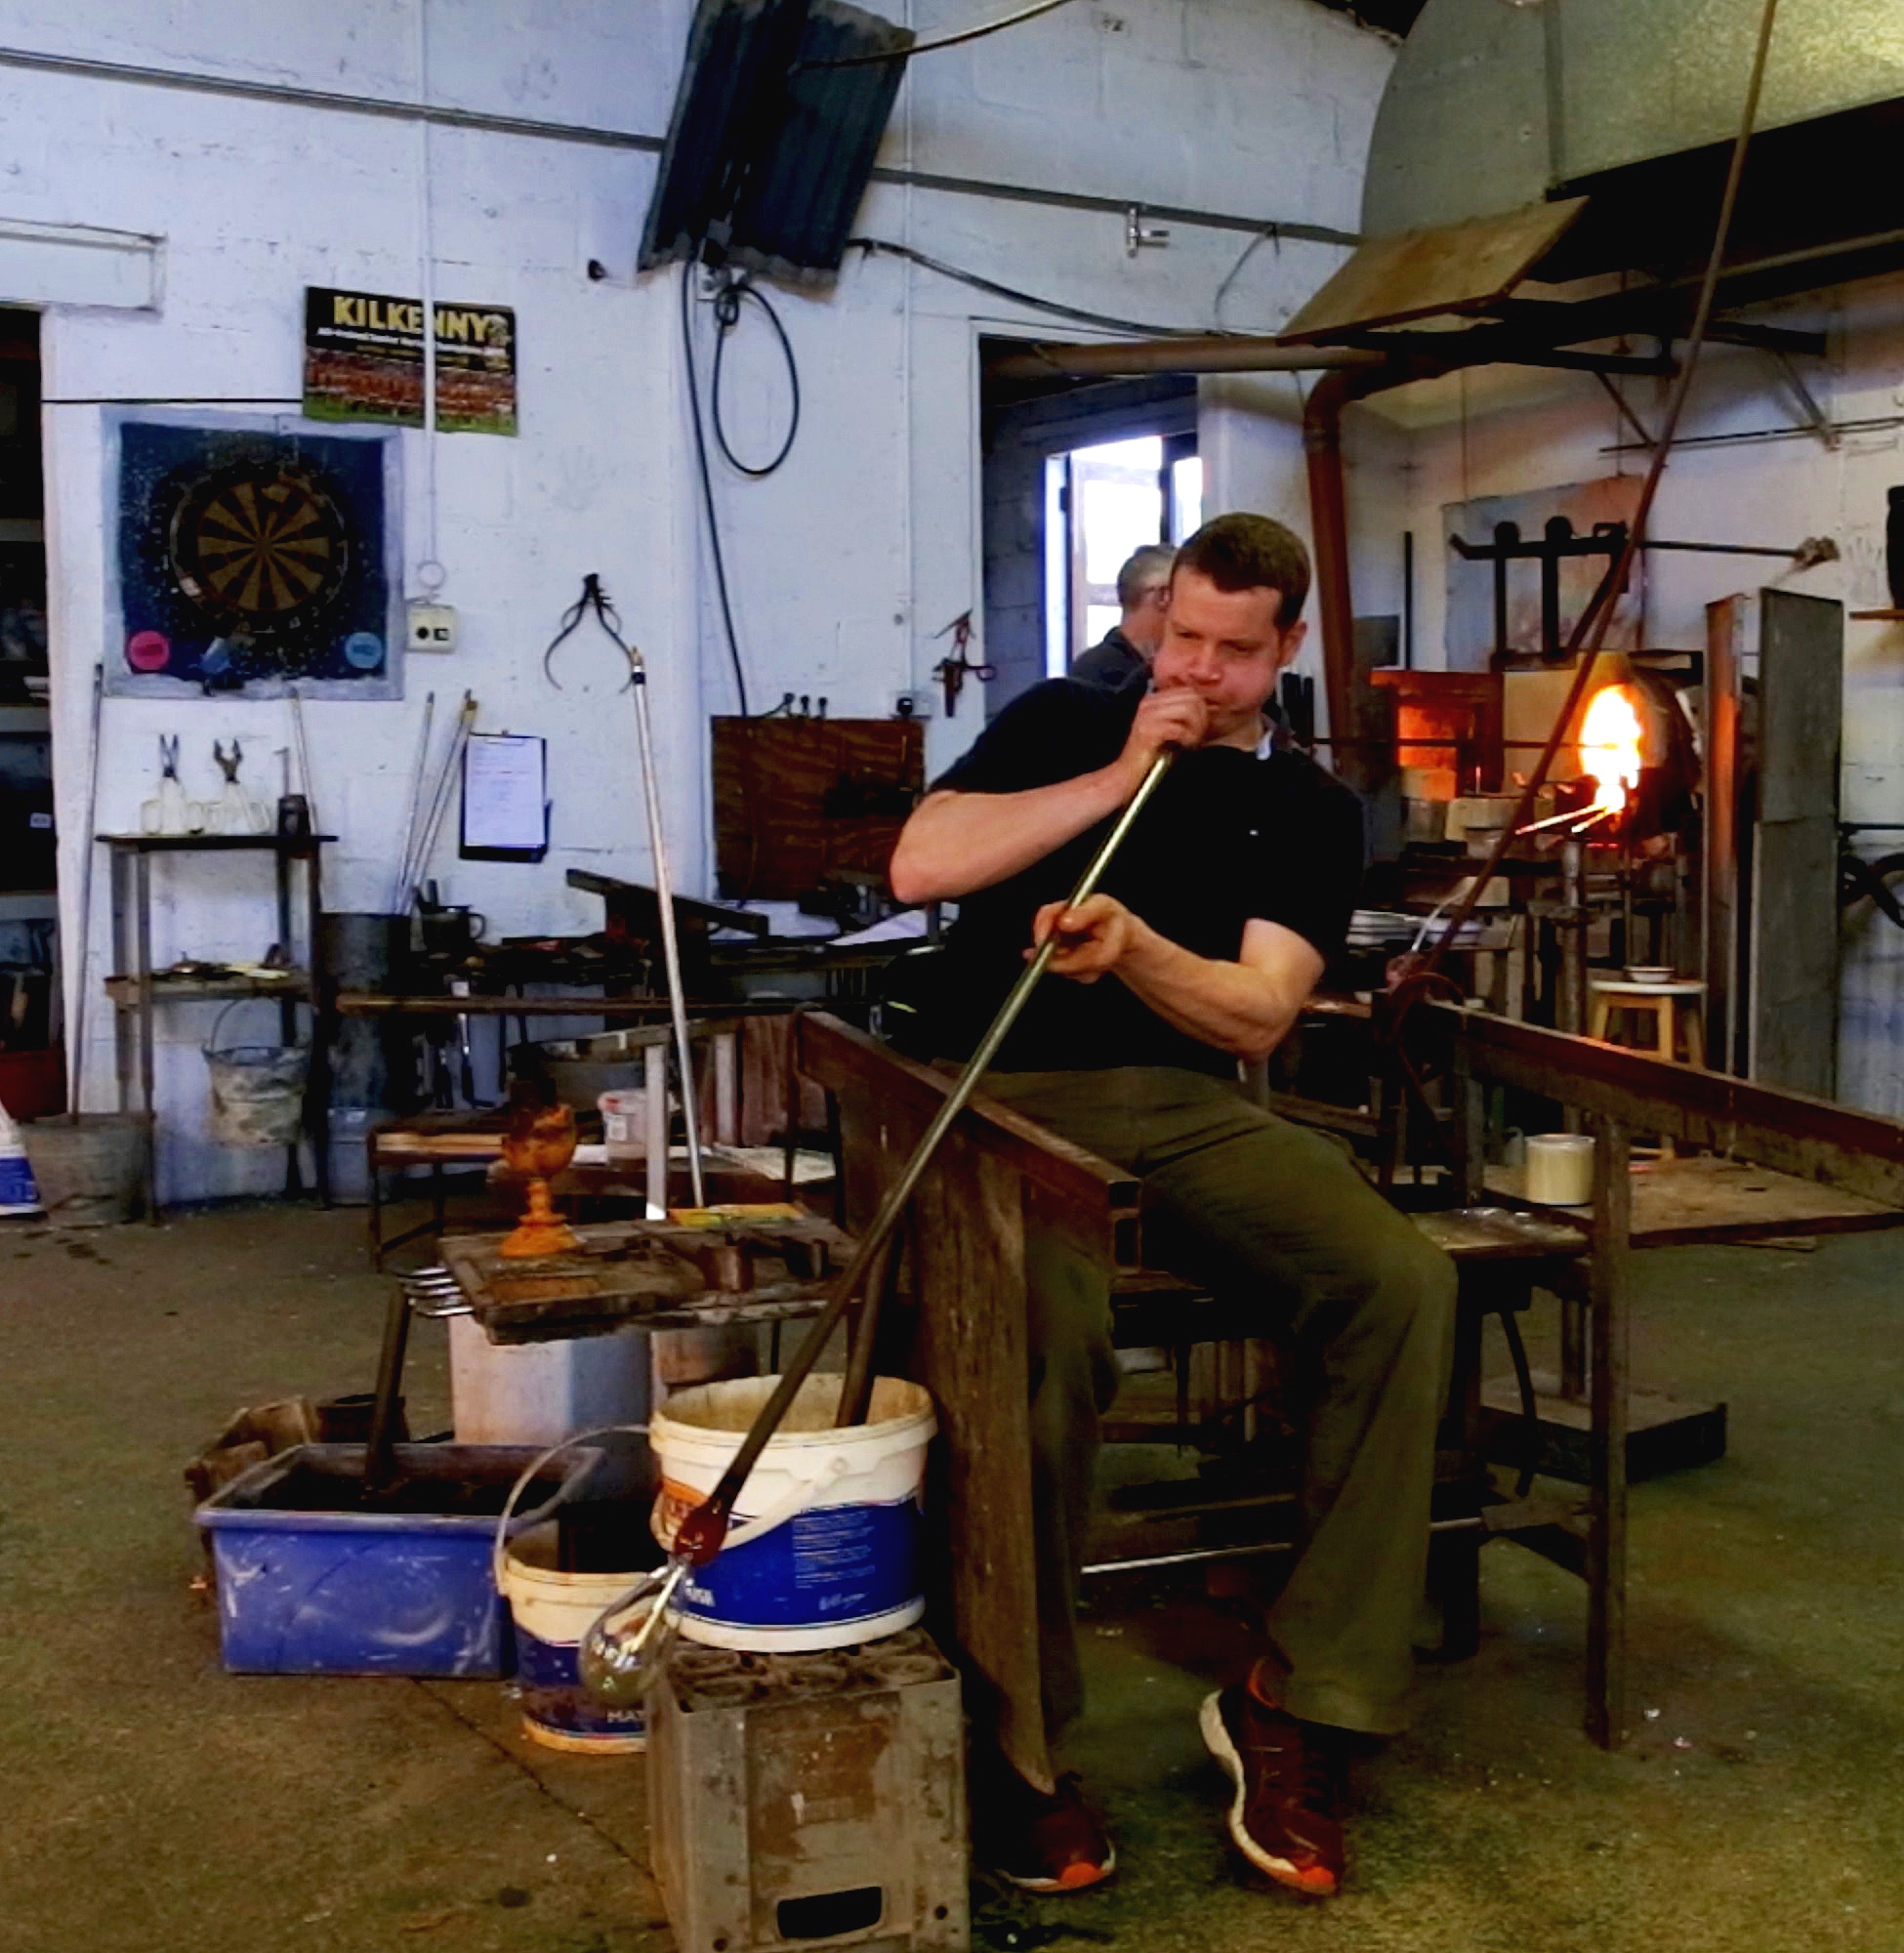 Rory Leadbetter is a master glass blower from Kilkenny. He delighted in the challenge to blow the perfect glass form that would safely contain the pure drop of the Lee.